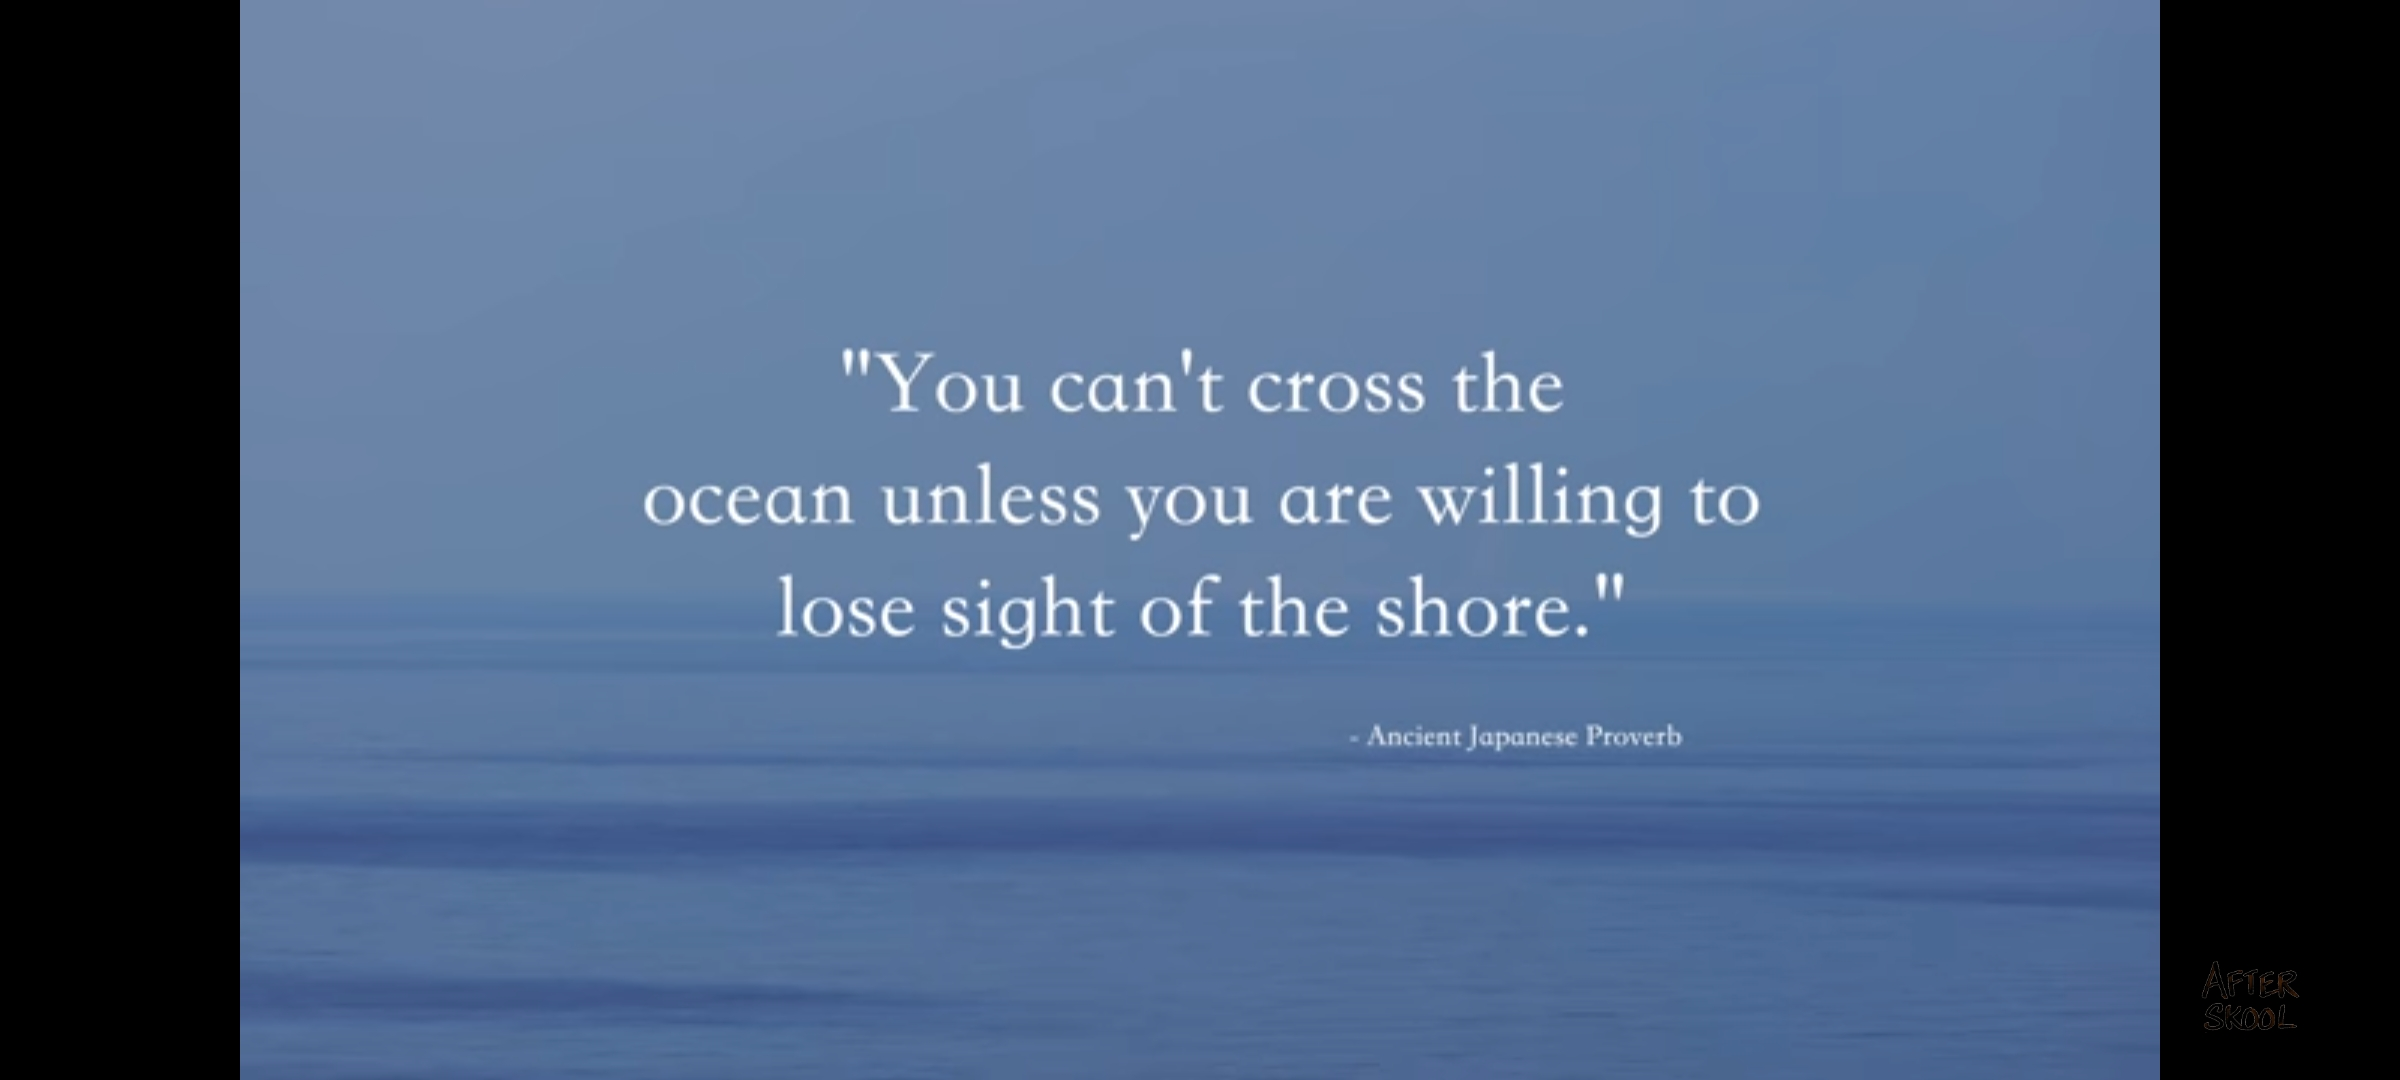 You can't cross the ocean unless you are willing to lose sight of the shore. Japanese Proverd 2400×1080